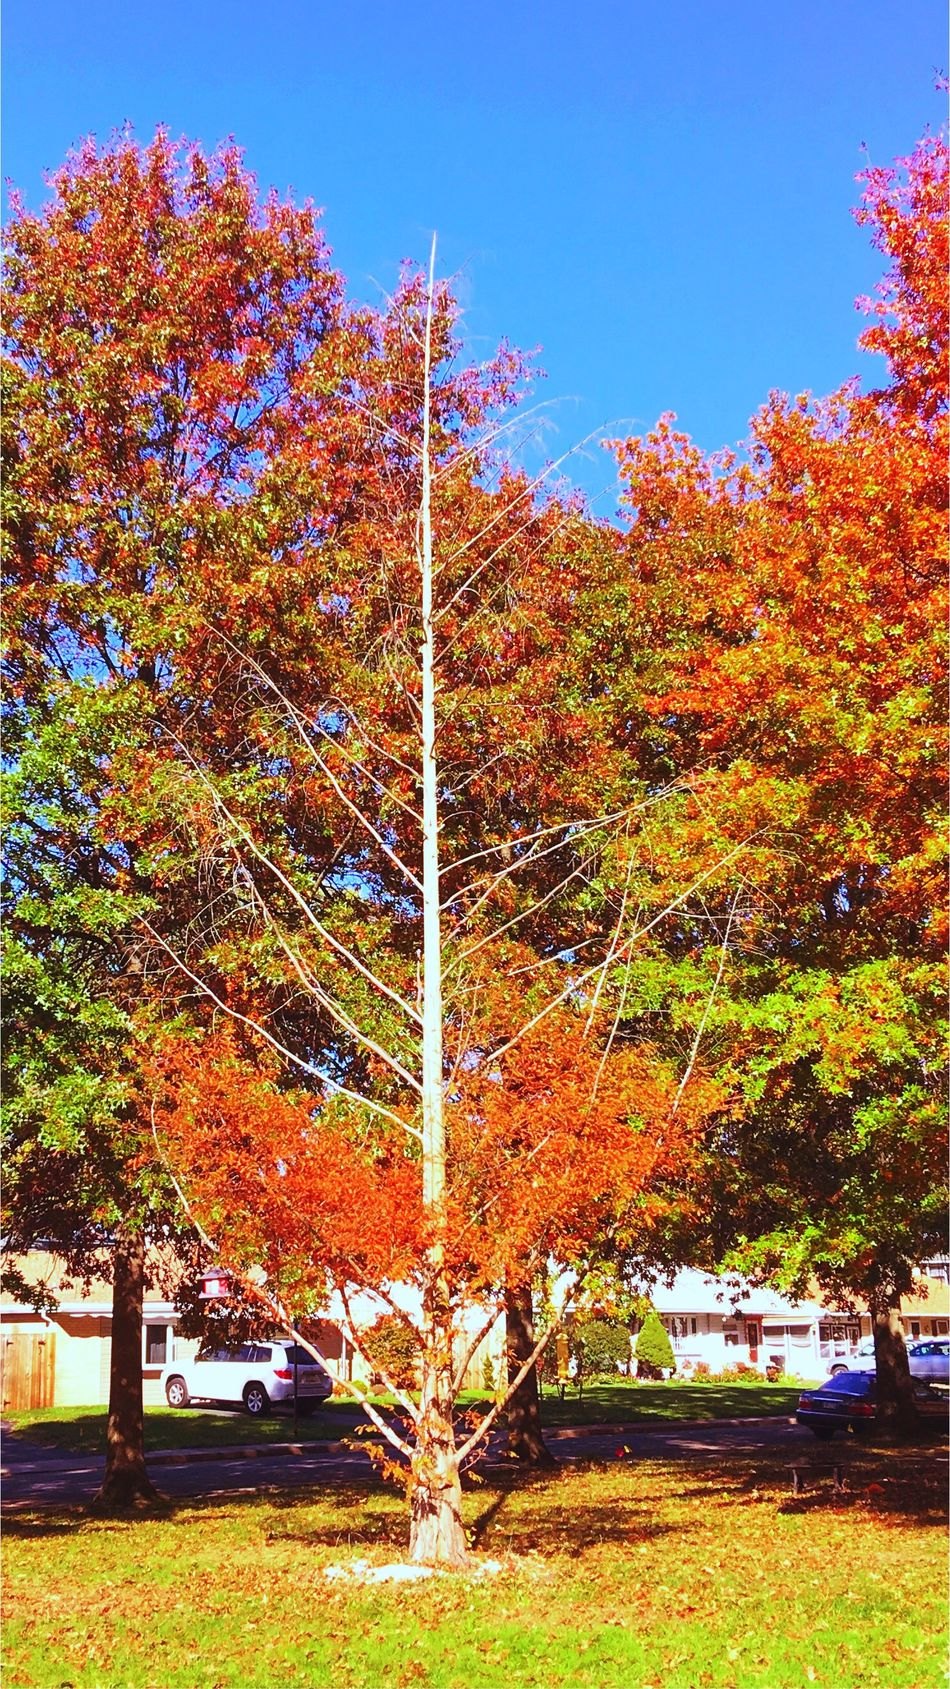 Trees still full of color except for one Tree Barrentree Nature Autumn Beauty In Nature Growth No People Change Outdoors Sky Day Scenics Autumn Woods Relaxedand Happy Taking Pictures Iphonephotography Fall Colors Leaf Tranquility Forest